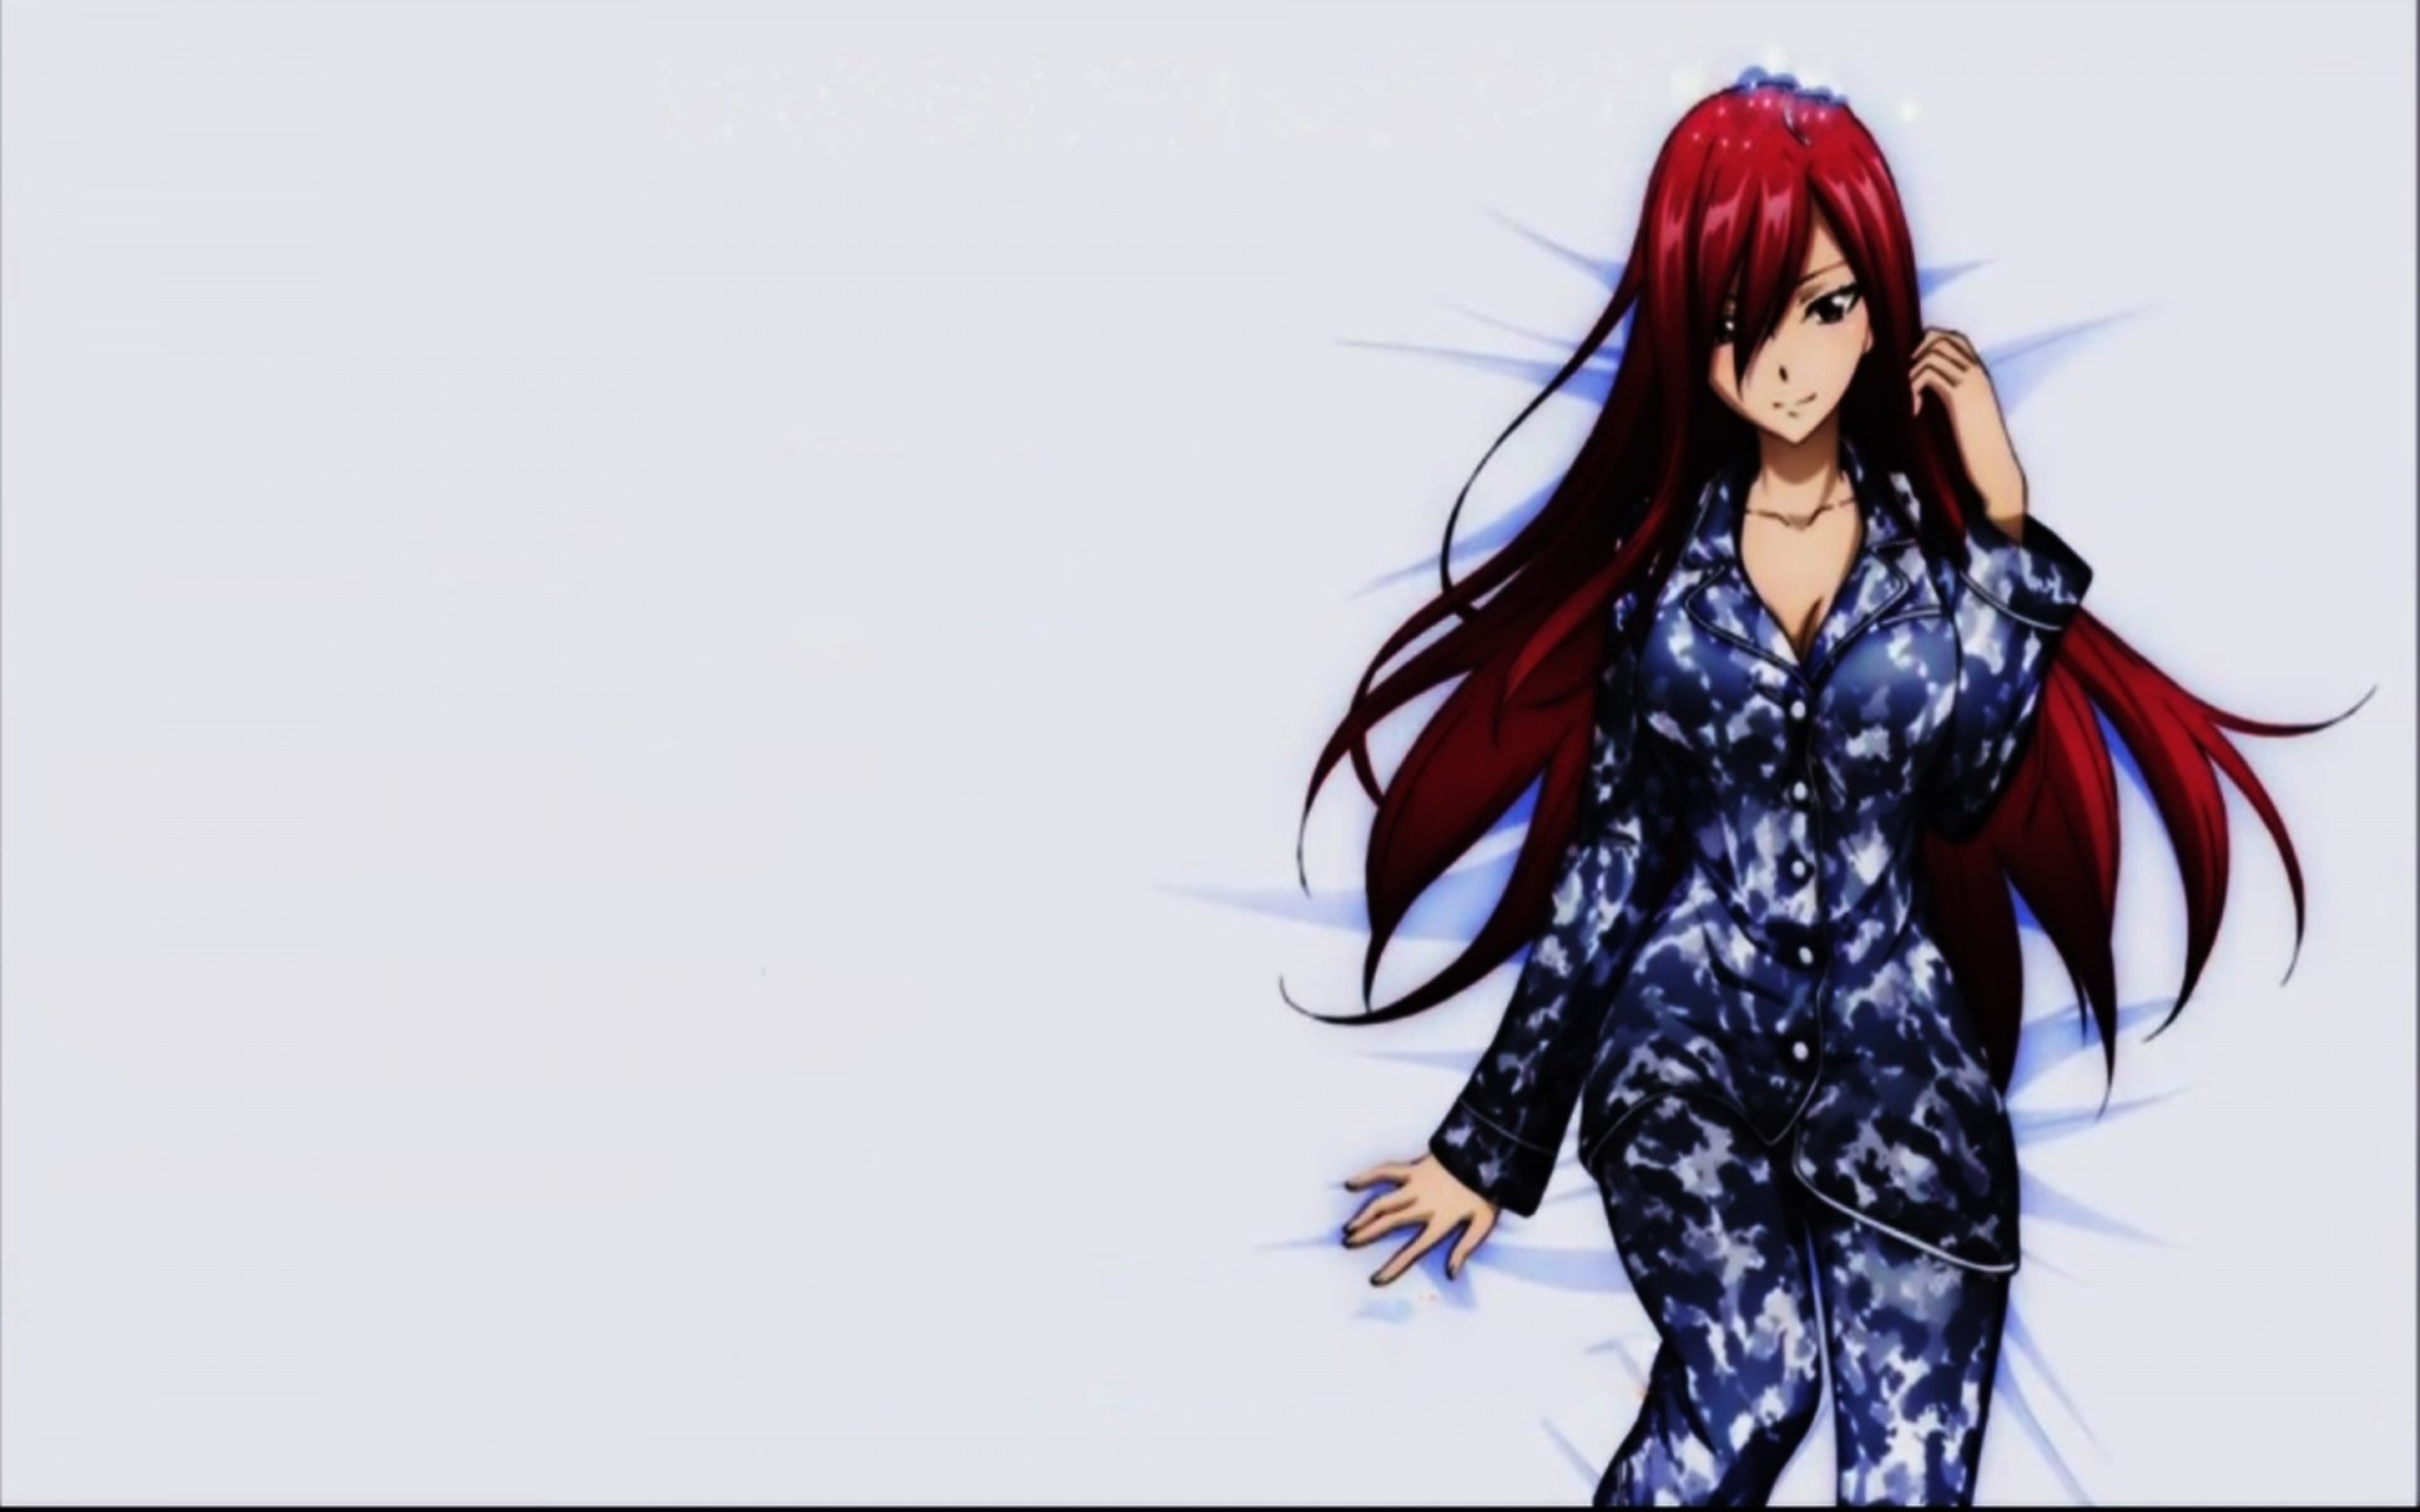 Anime 4k Wallpaper: 37+ Awesome Anime Wallpapers ·① Download Free Awesome HD